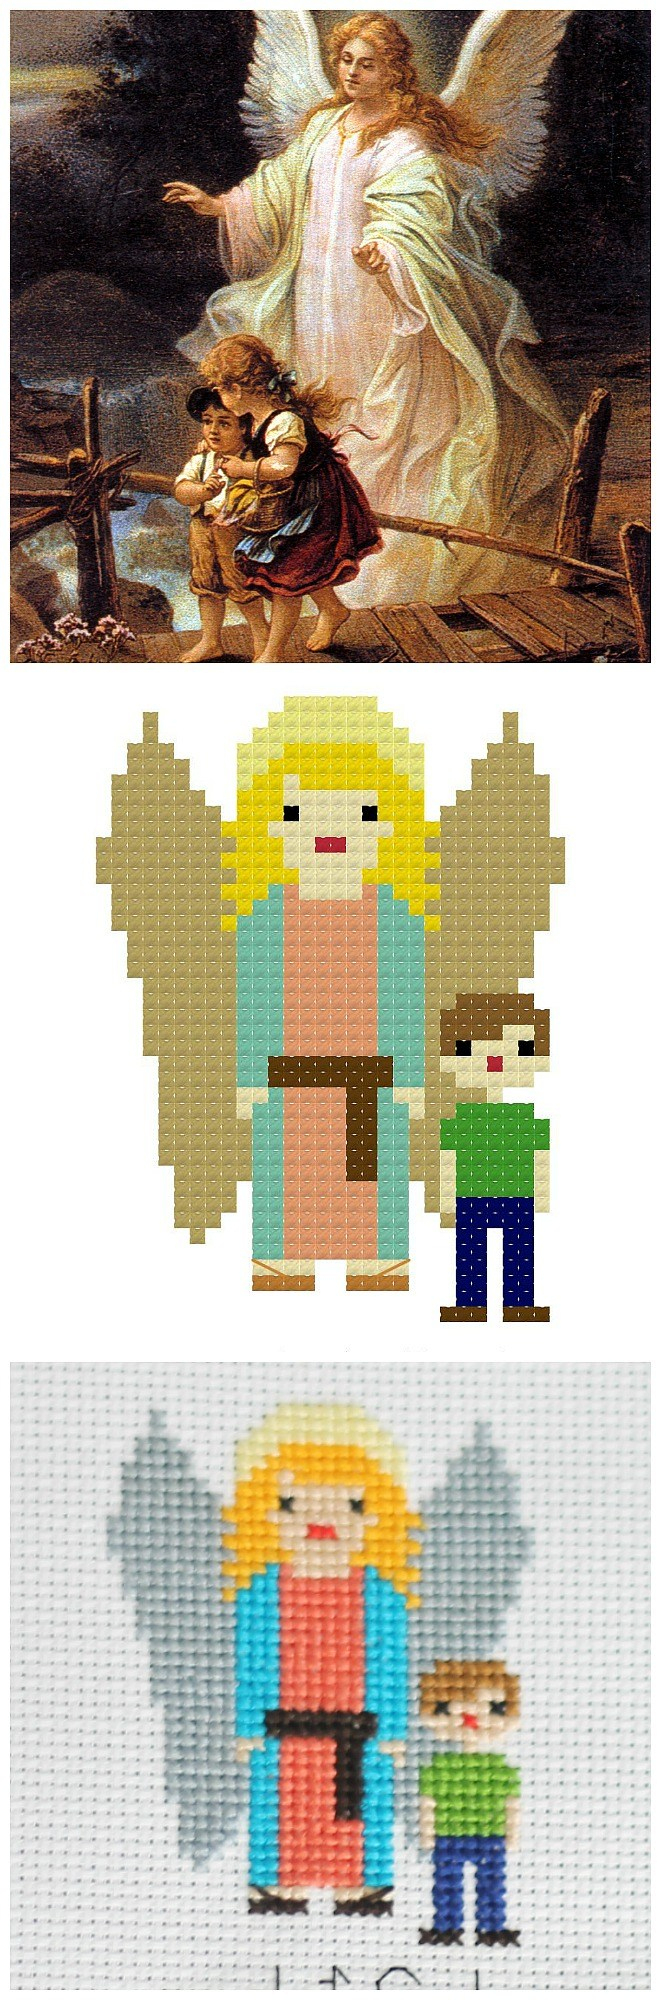 Free Printable Cross Stitch Patterns Angels